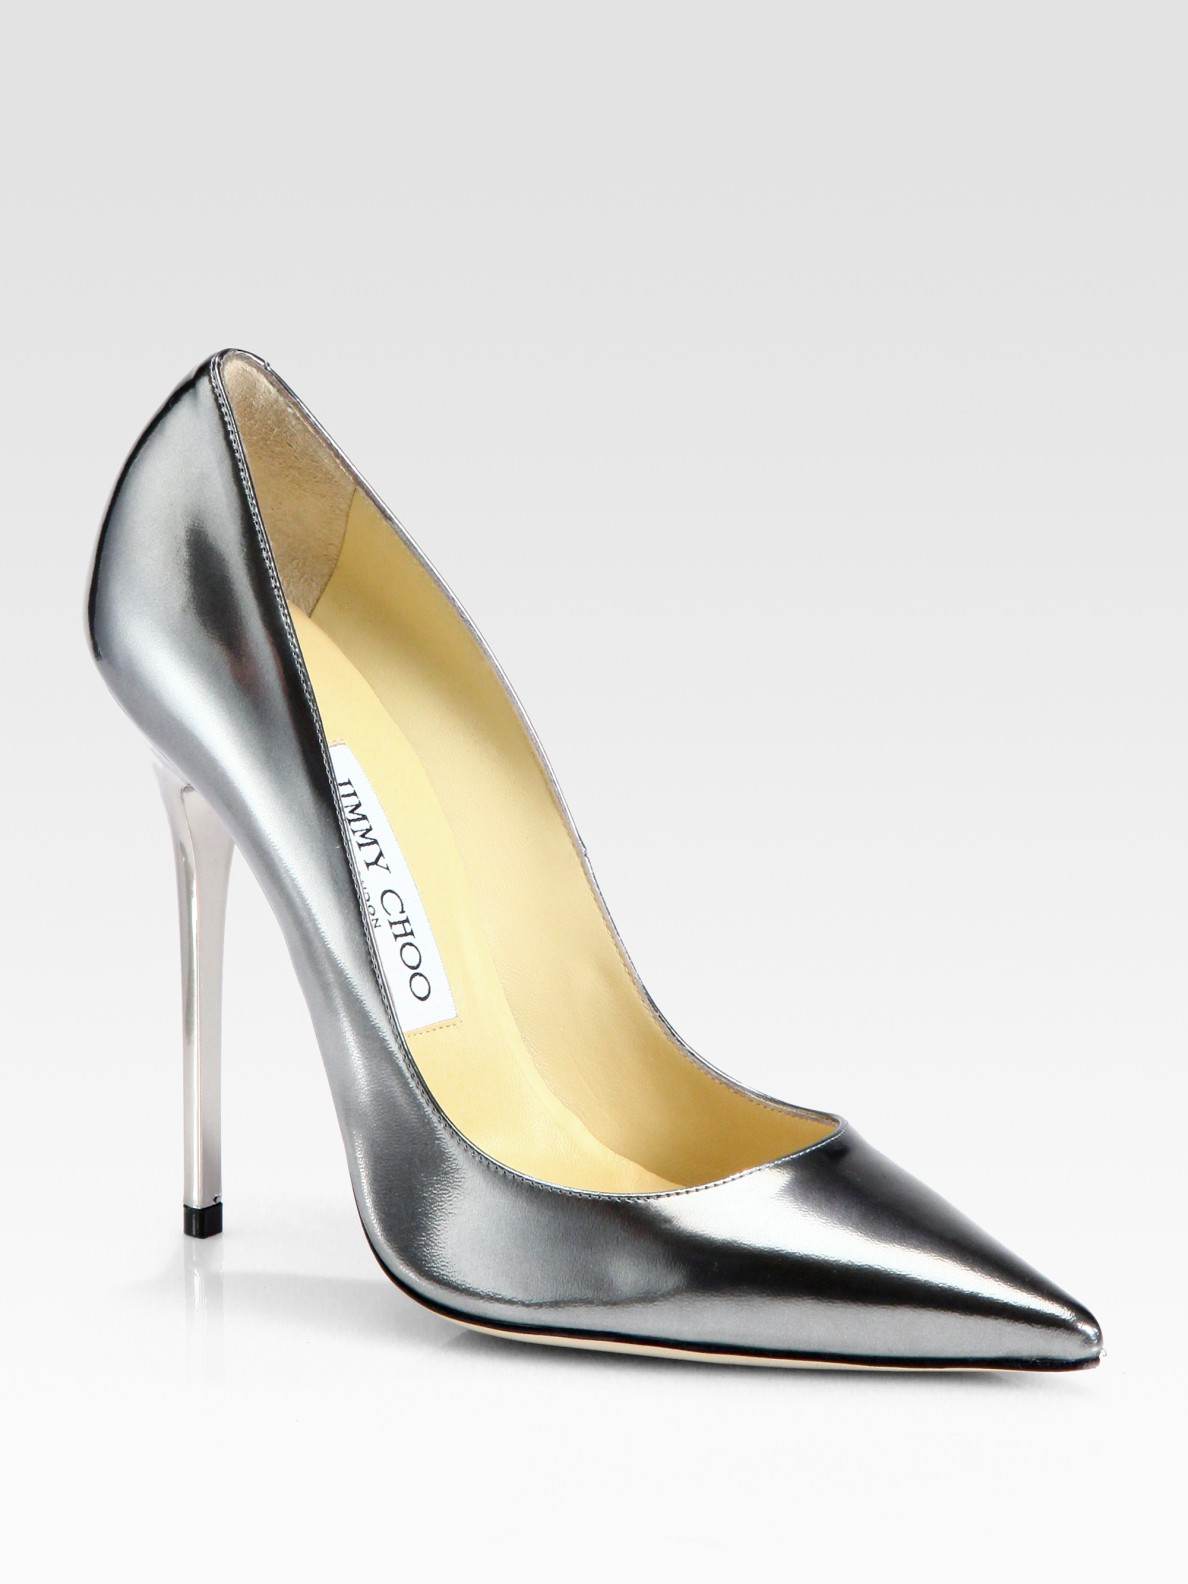 Jimmy Choo Women's Shoes Launched by bespoke shoemaker Jimmy Choo in , the brand is now under the creative direction of his niece Sandra Choi. Choose from the latest collection of heels, sneakers and boots.